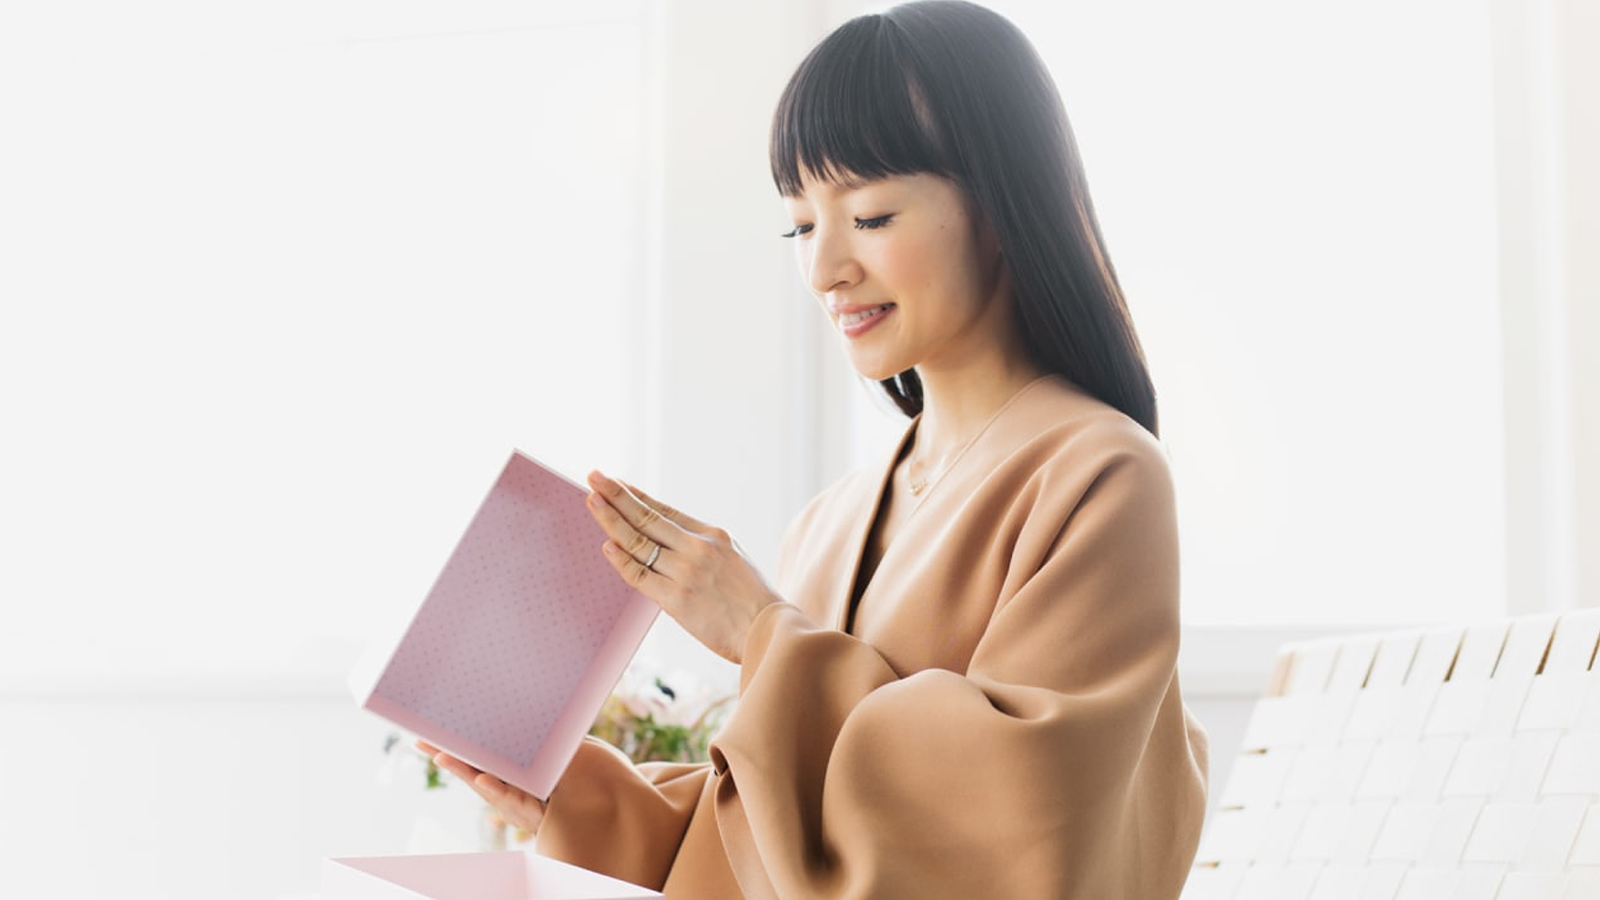 Marie Kondo explains how to spark joy in your job search